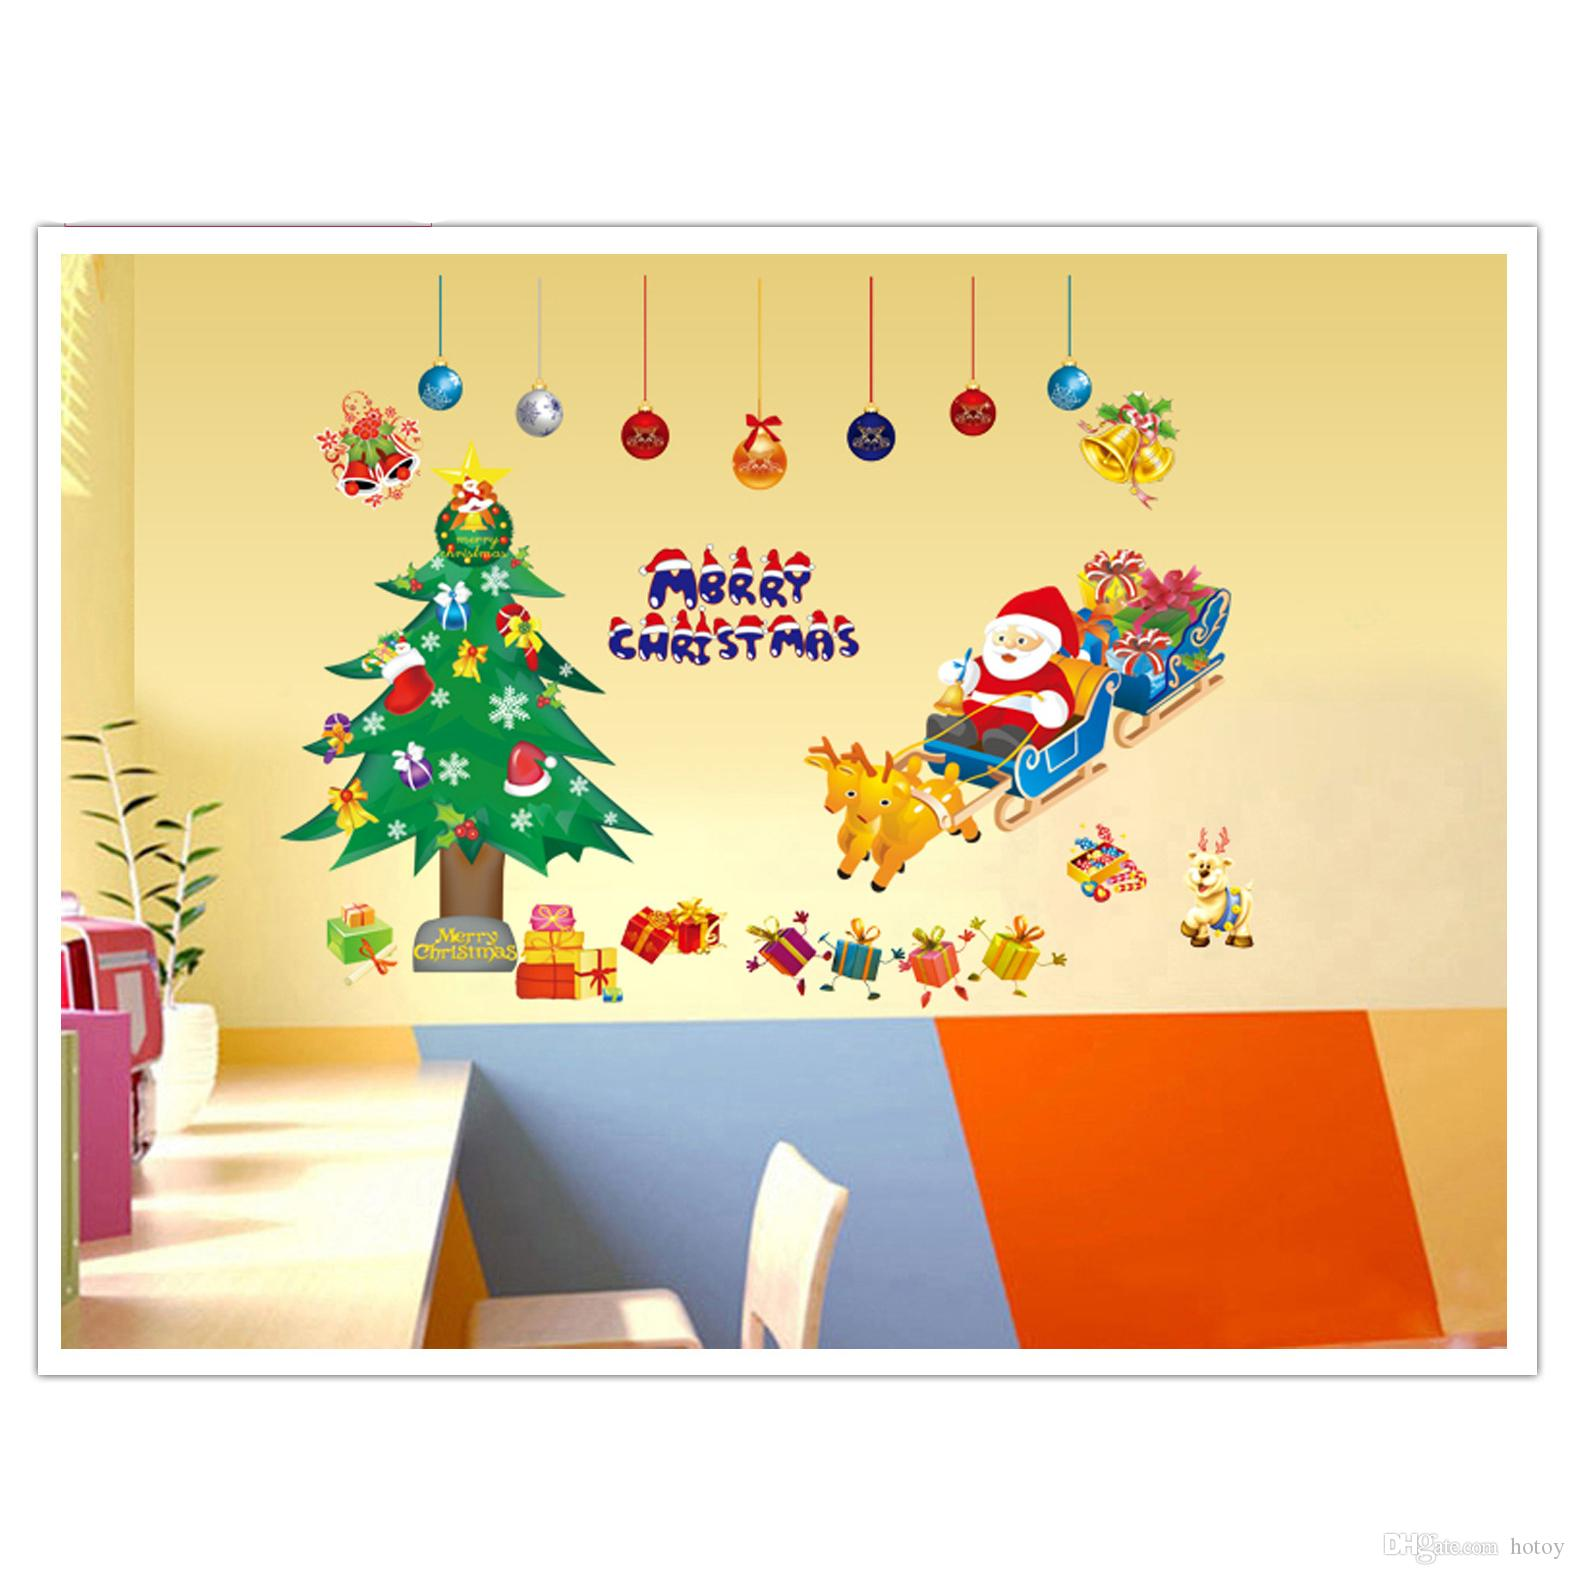 Christmas Sticker Pop Funko Merry Christmas Puzzle Wall Art ...